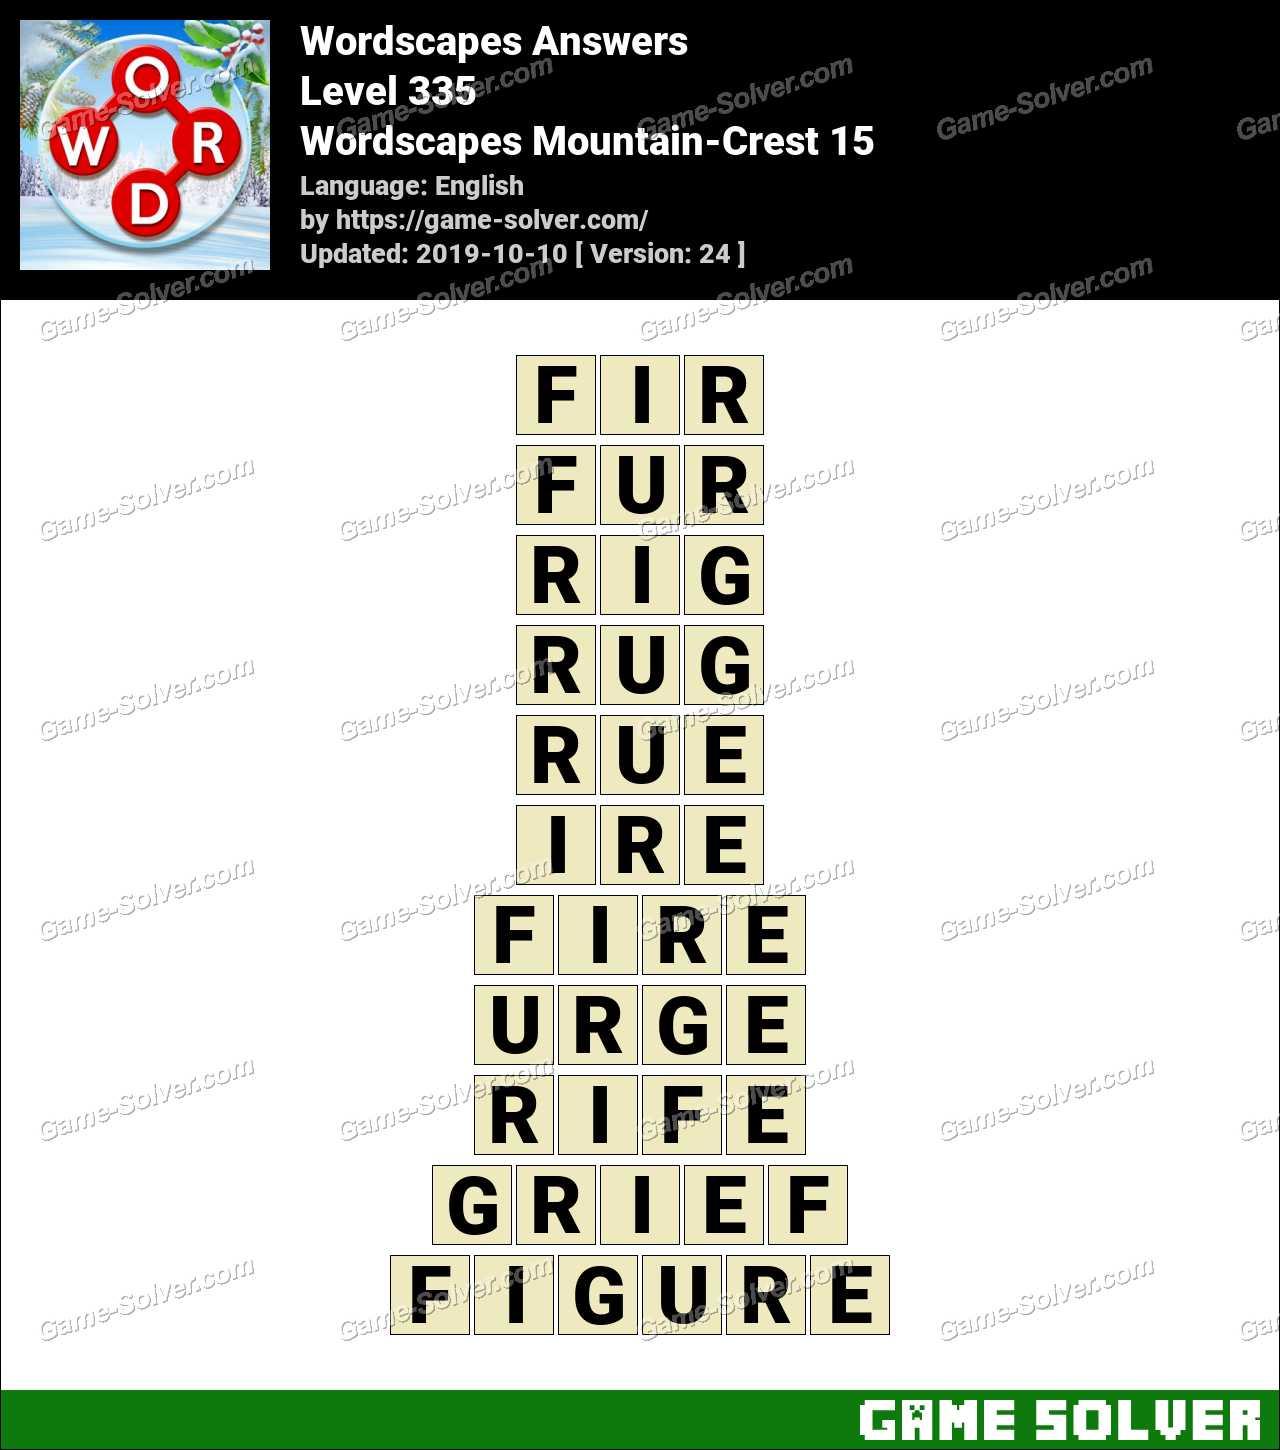 Wordscapes Mountain-Crest 15 Answers